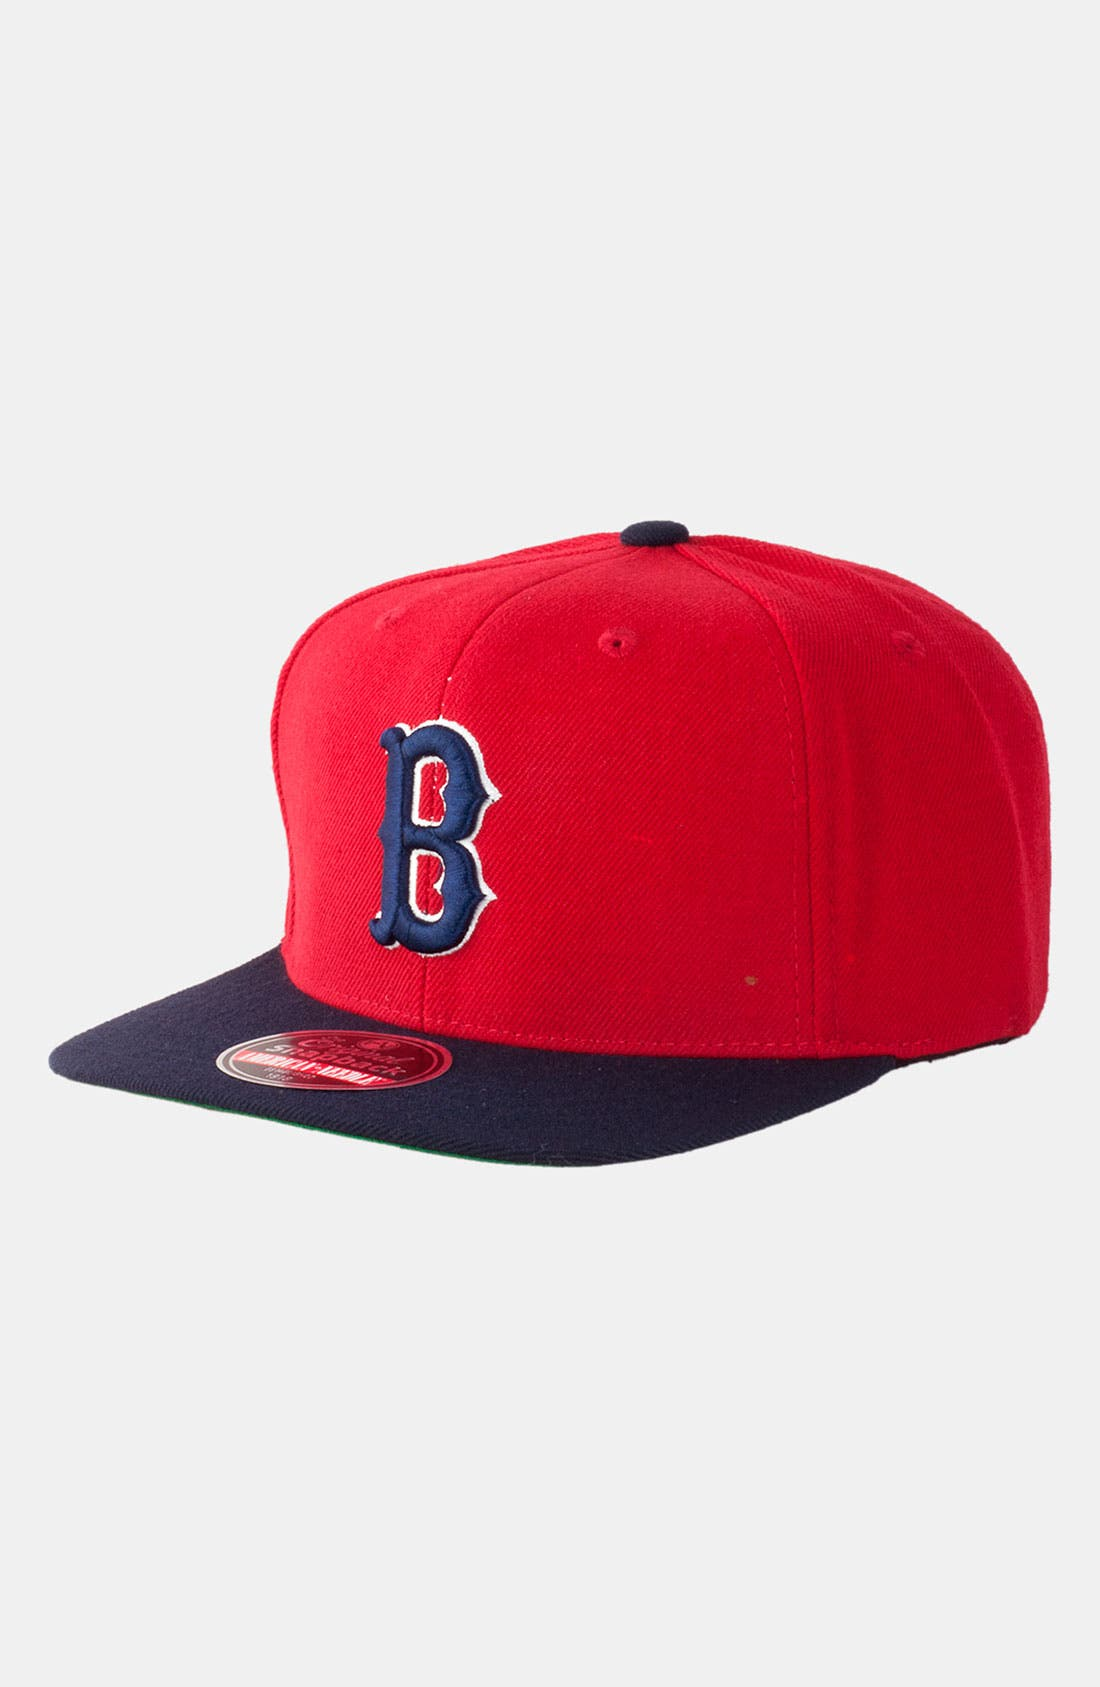 Alternate Image 1 Selected - American Needle 'Boston Red Sox - Cooperstown' Snapback Baseball Cap